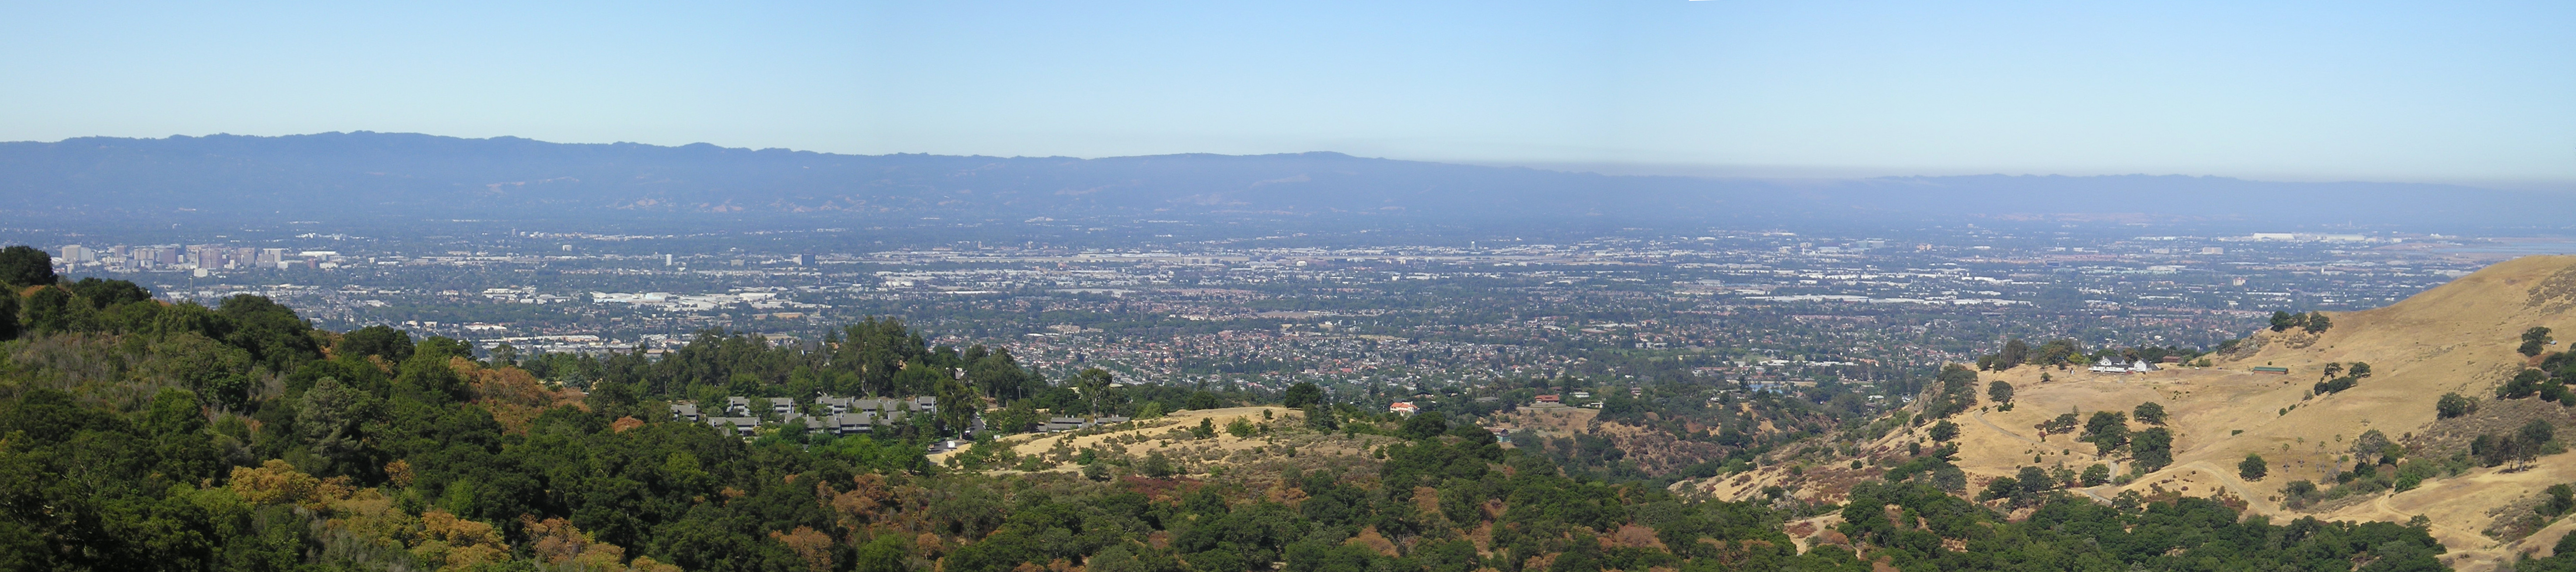 Looking west over northern San Jose (downtown is at far left) and other parts of Silicon Valley